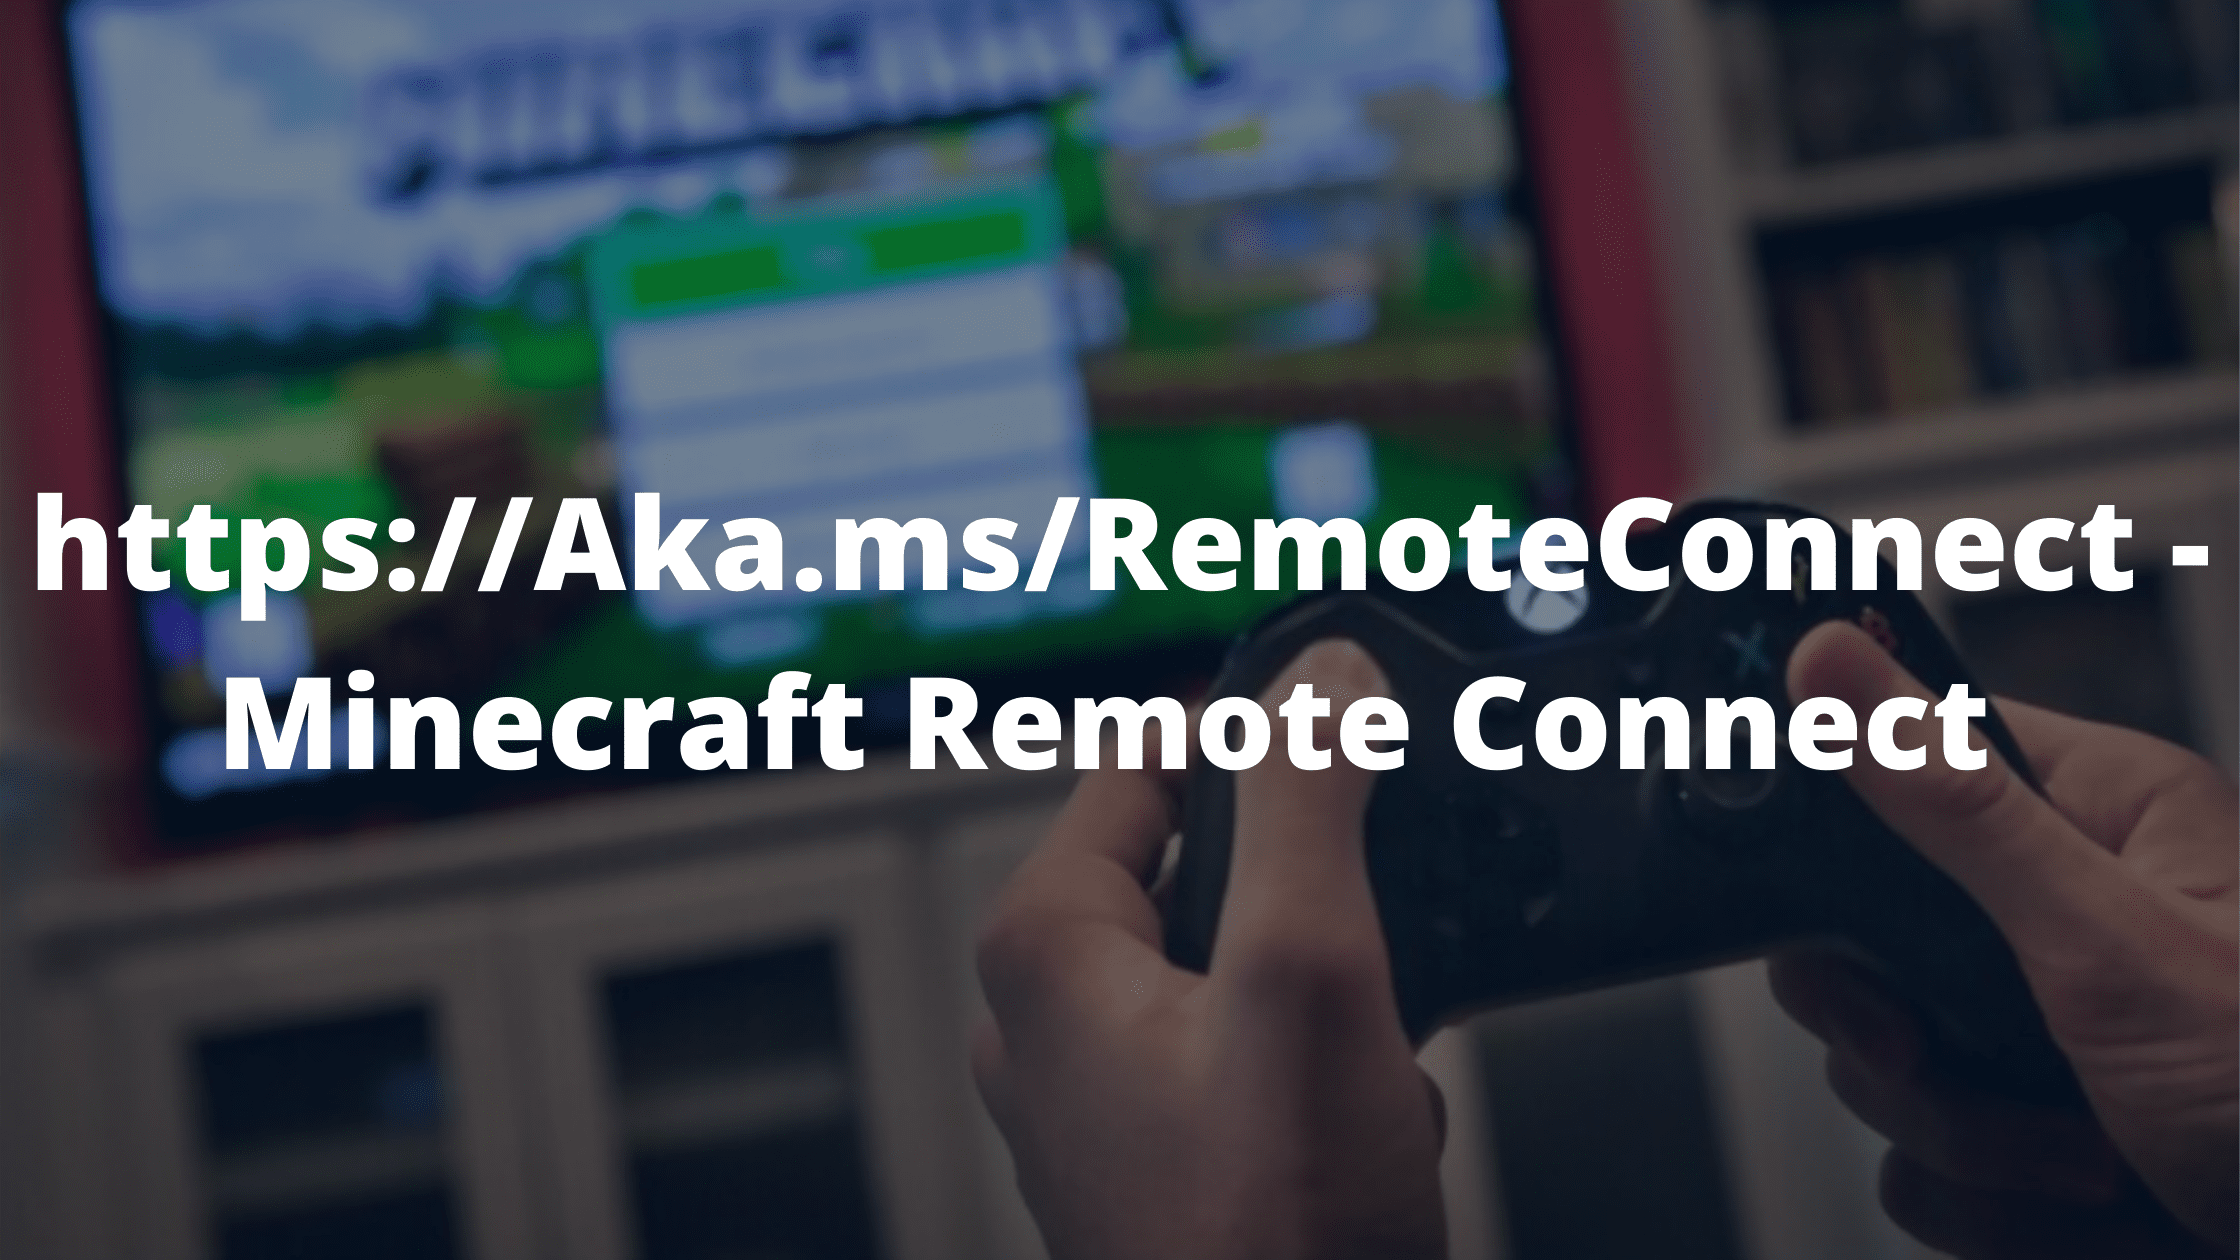 Aka.ms RemoteConnect Minecraft Remote Connect